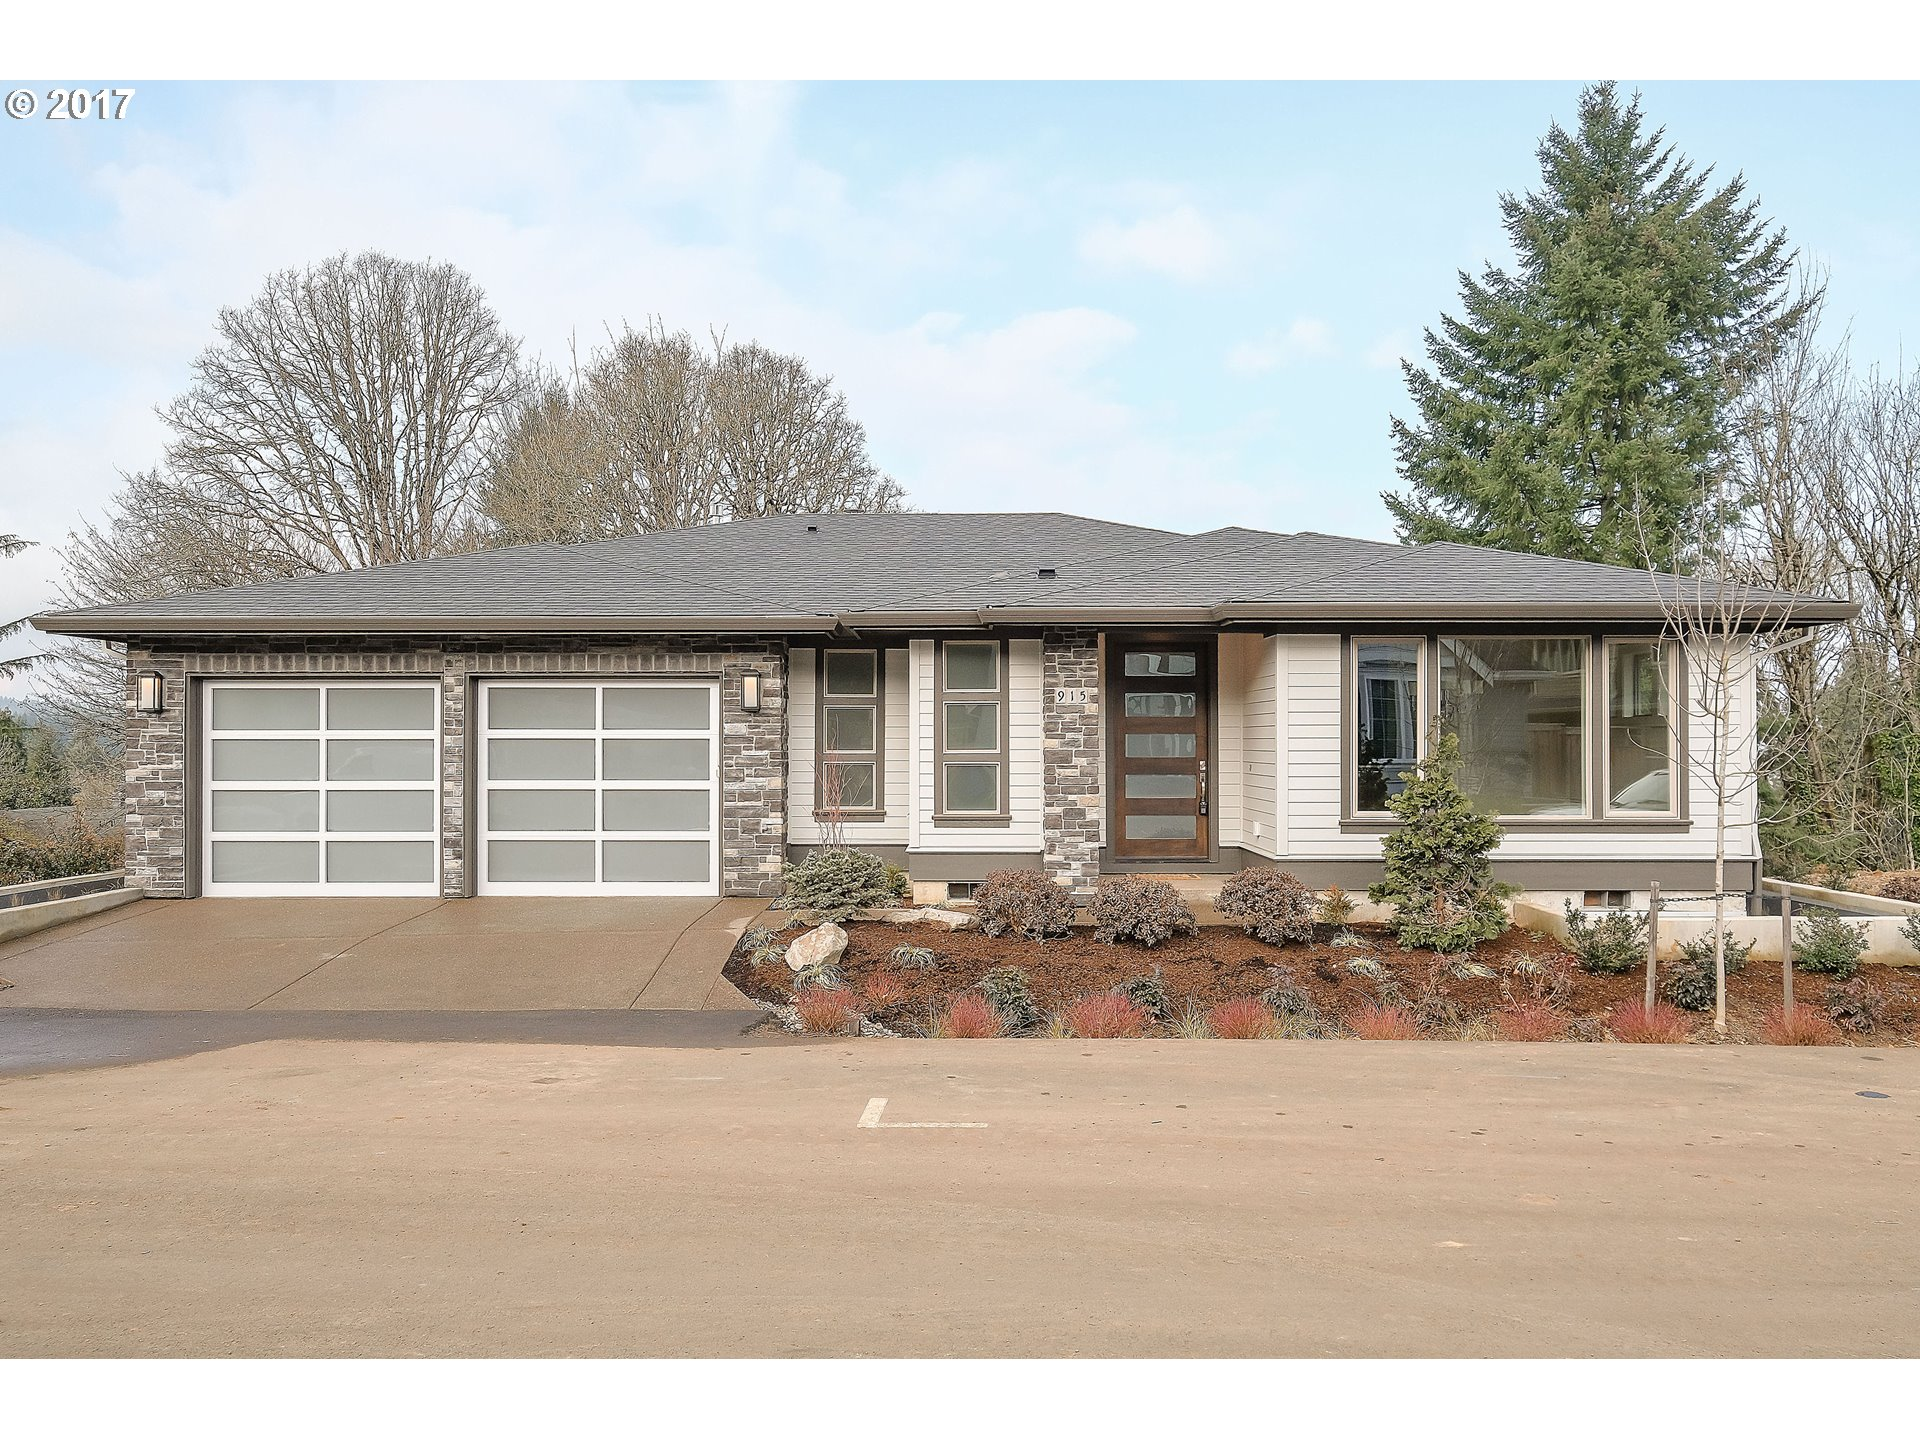 915 CEDAR ST, Lake Oswego, OR 97034